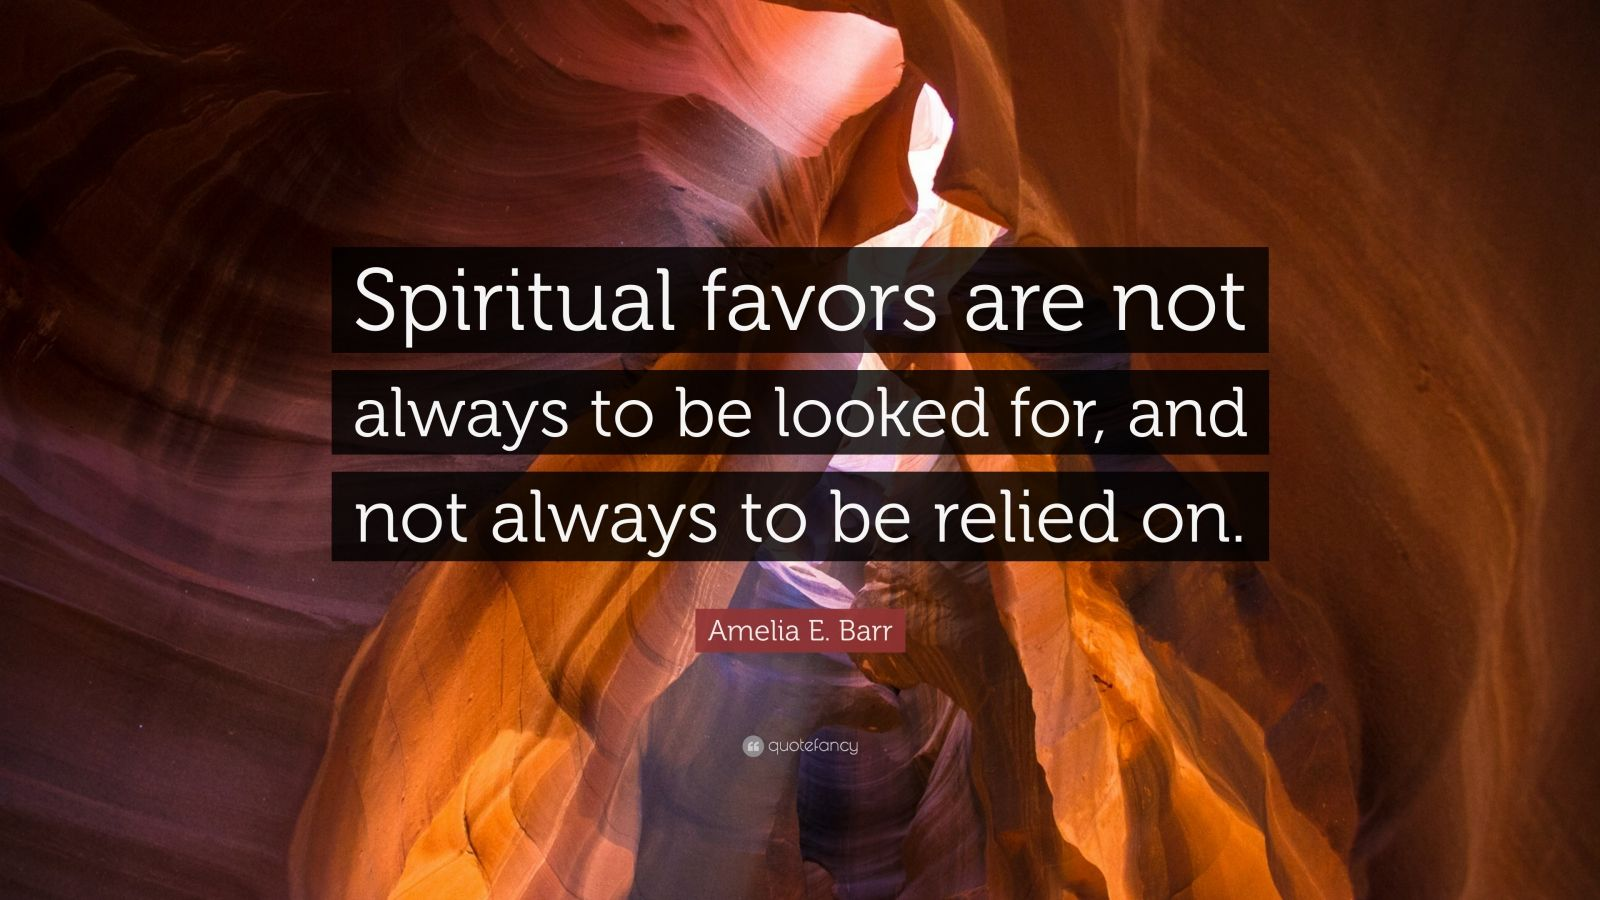 """Amelia E. Barr Quote: """"Spiritual favors are not always to be looked for, and not always to be relied on."""""""